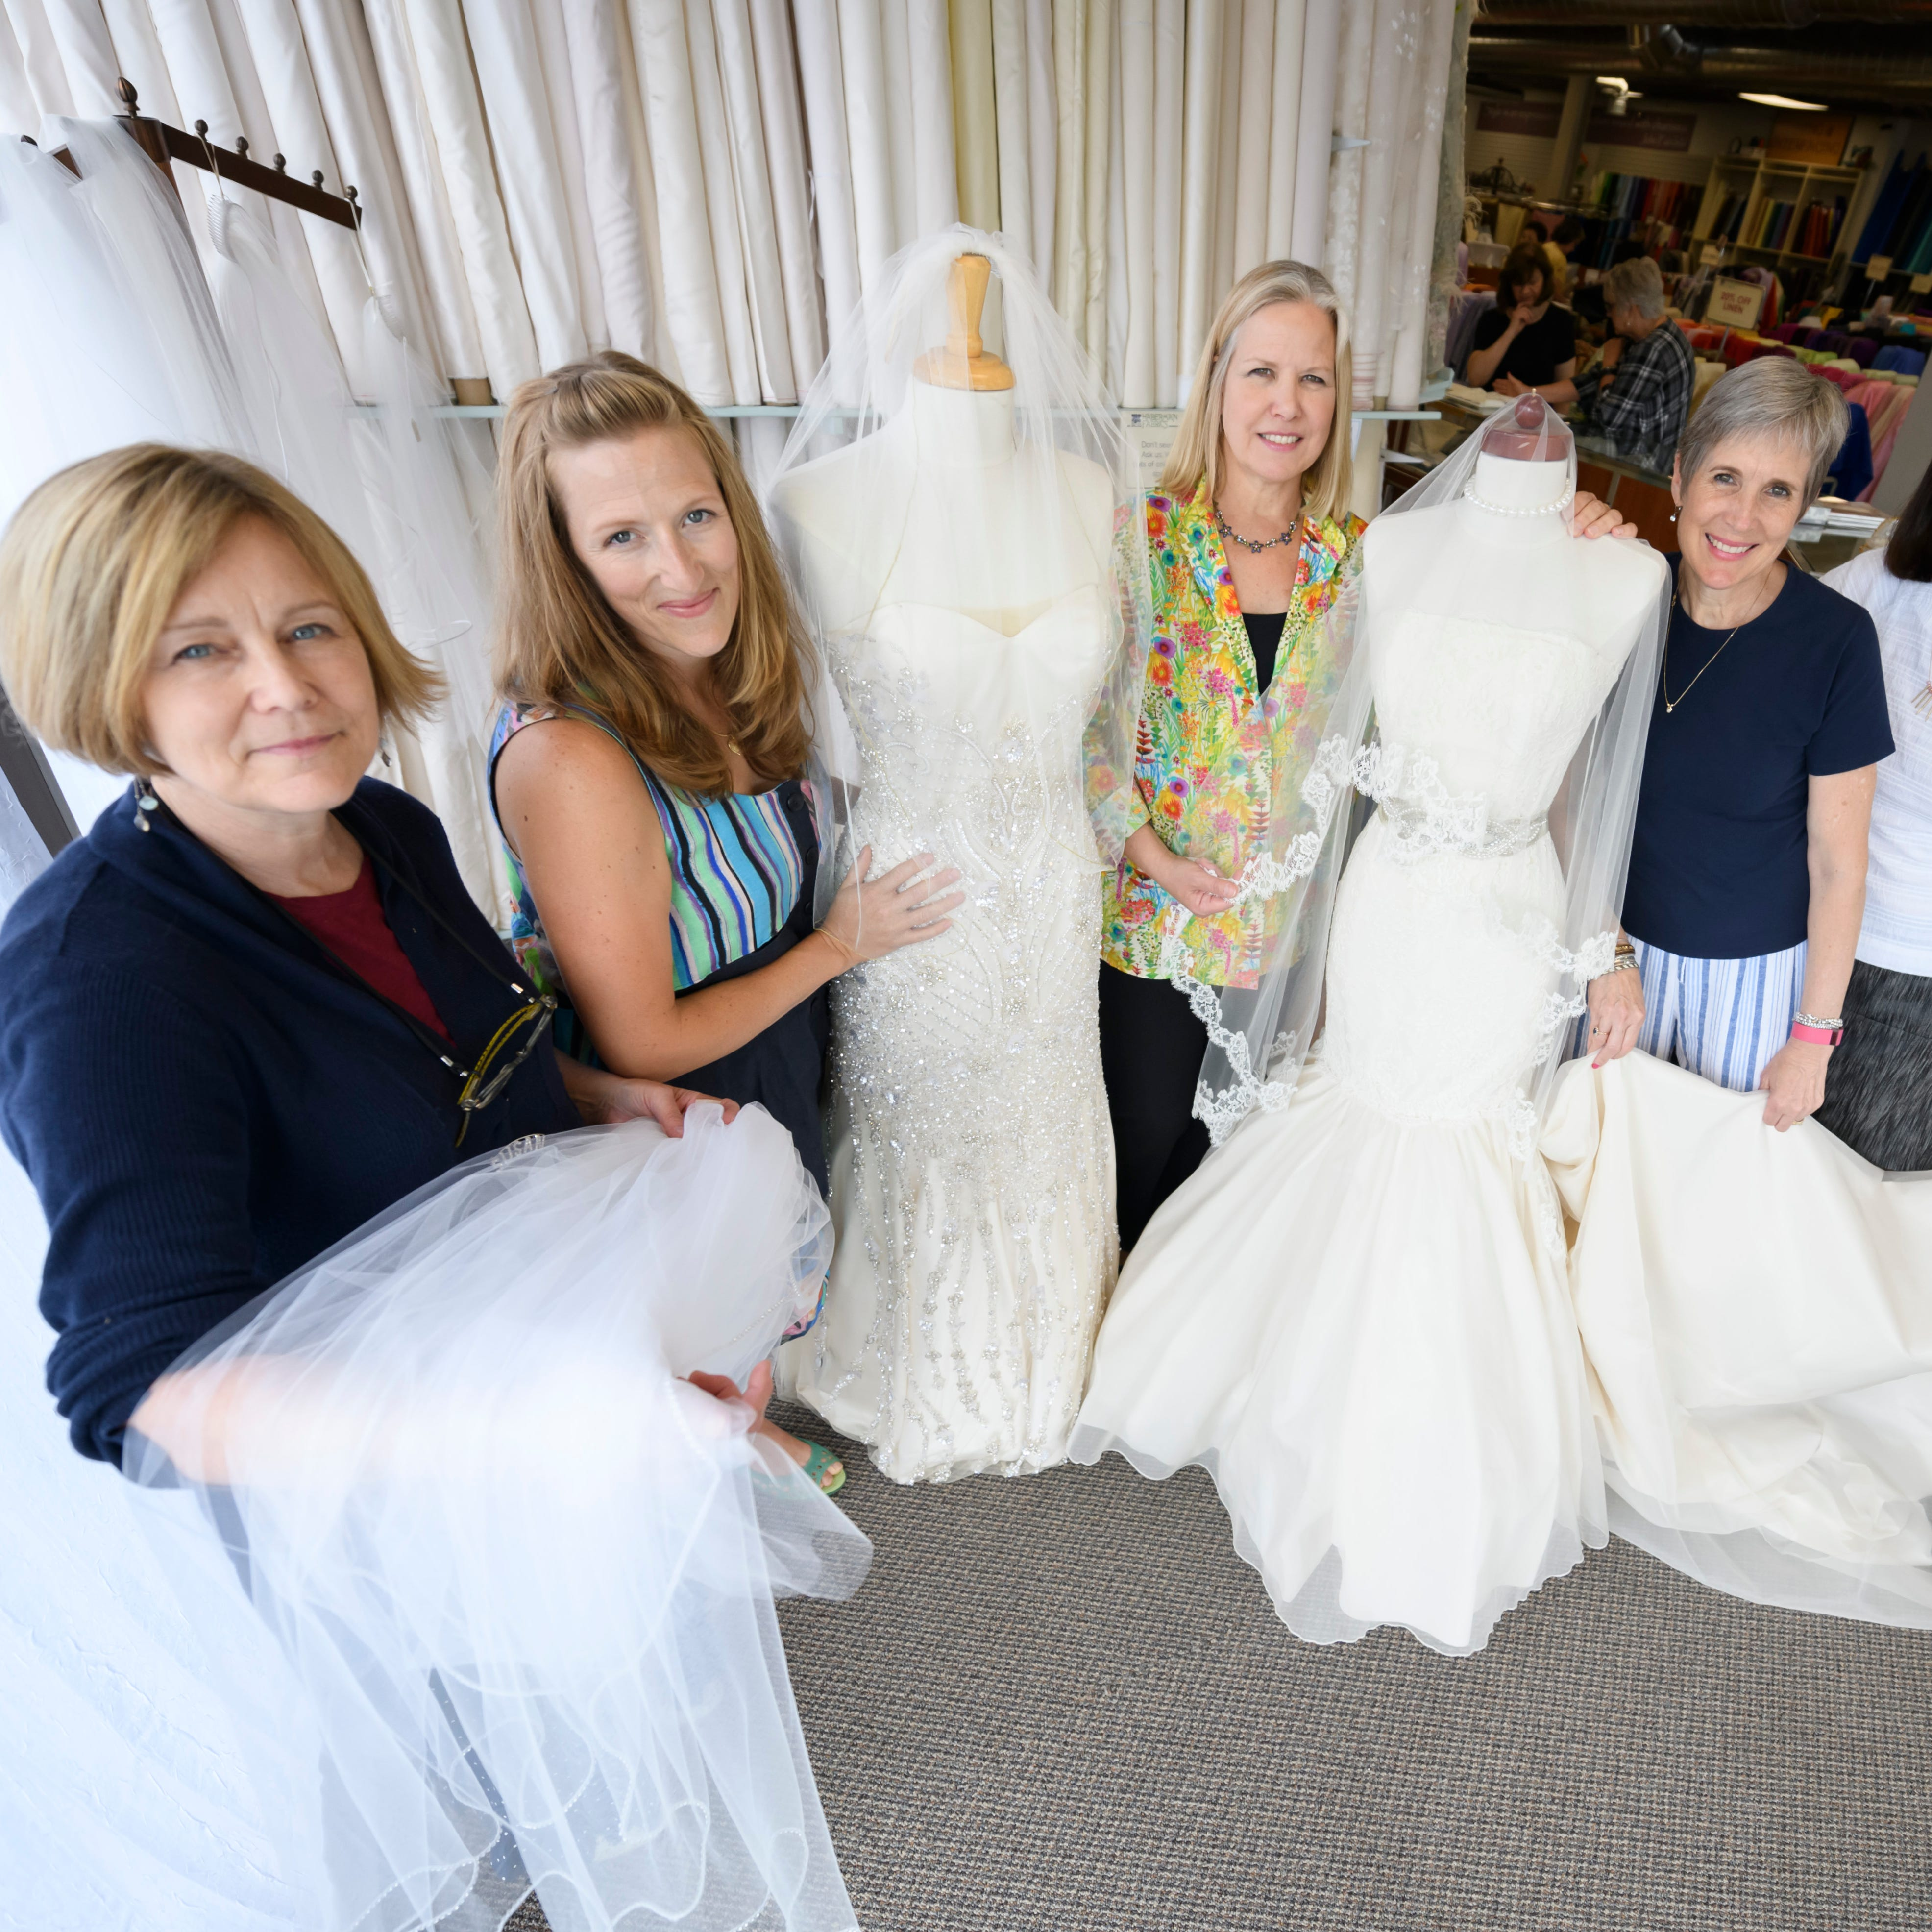 Handmade: Customers flock to new Haberman Fabrics shop